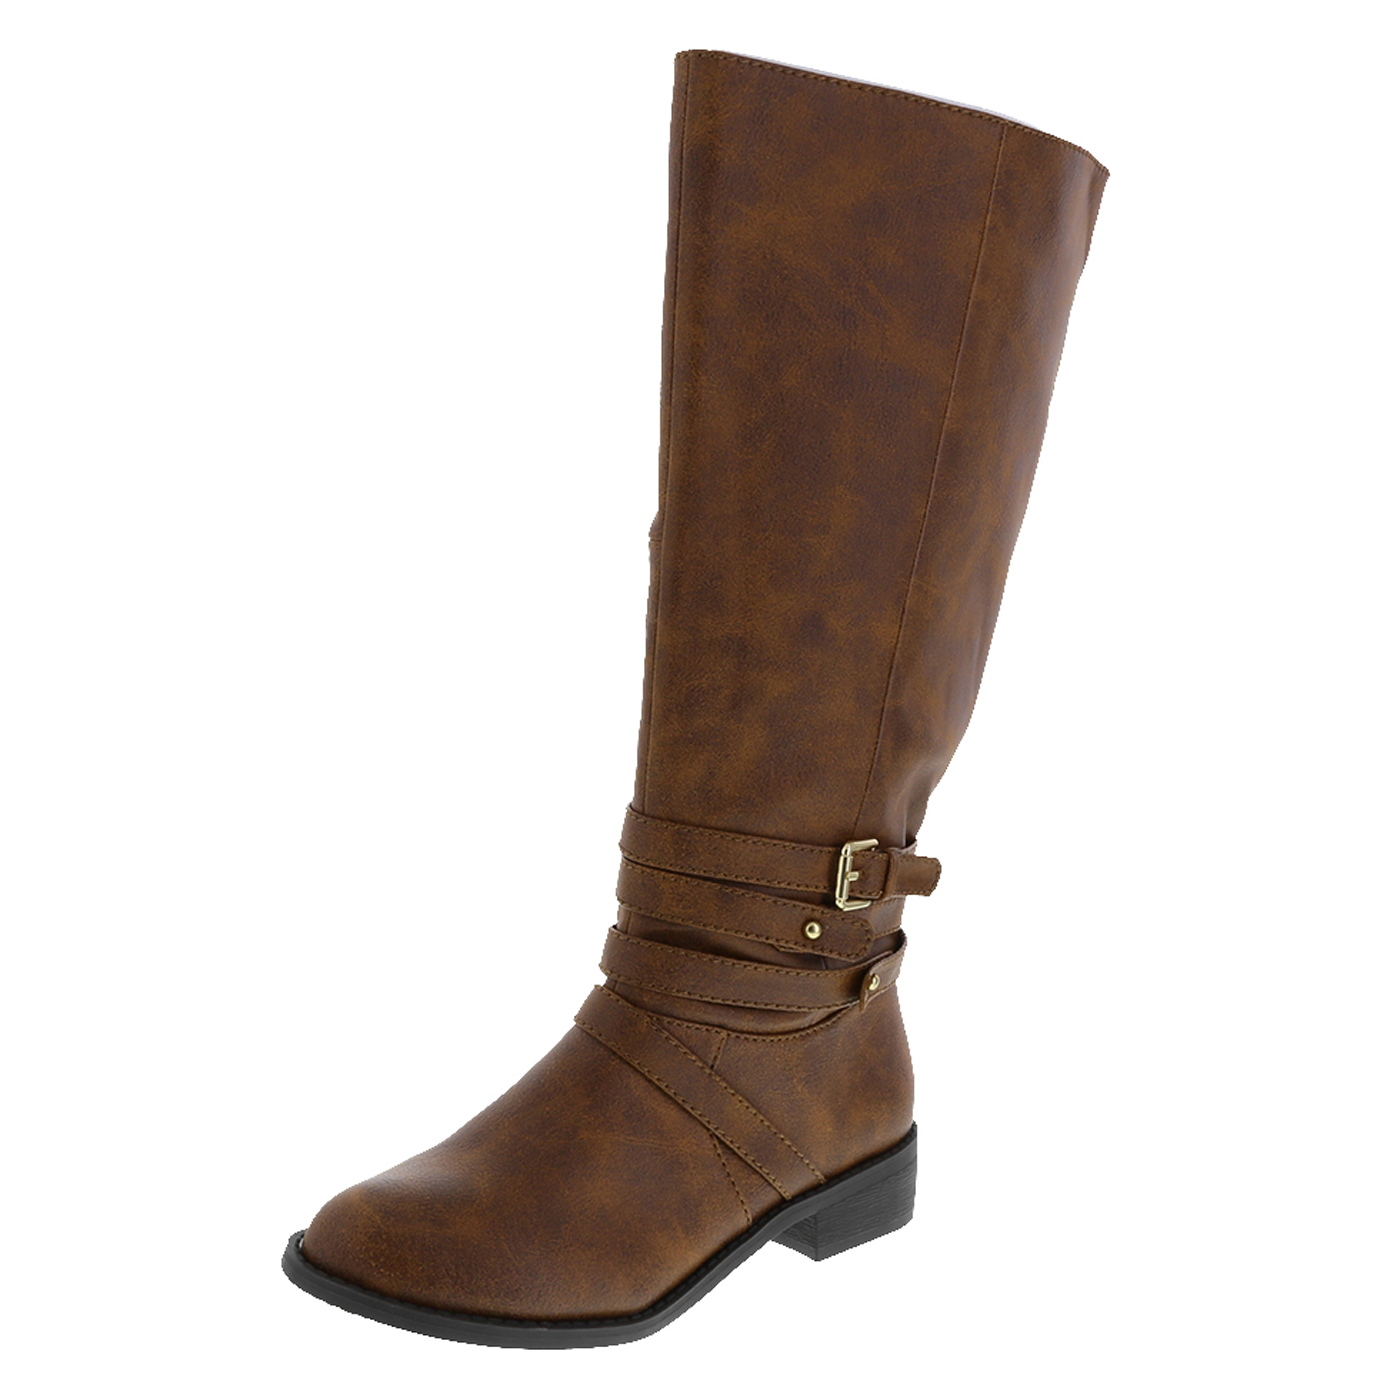 payless boots womens photo collection fabulous payless